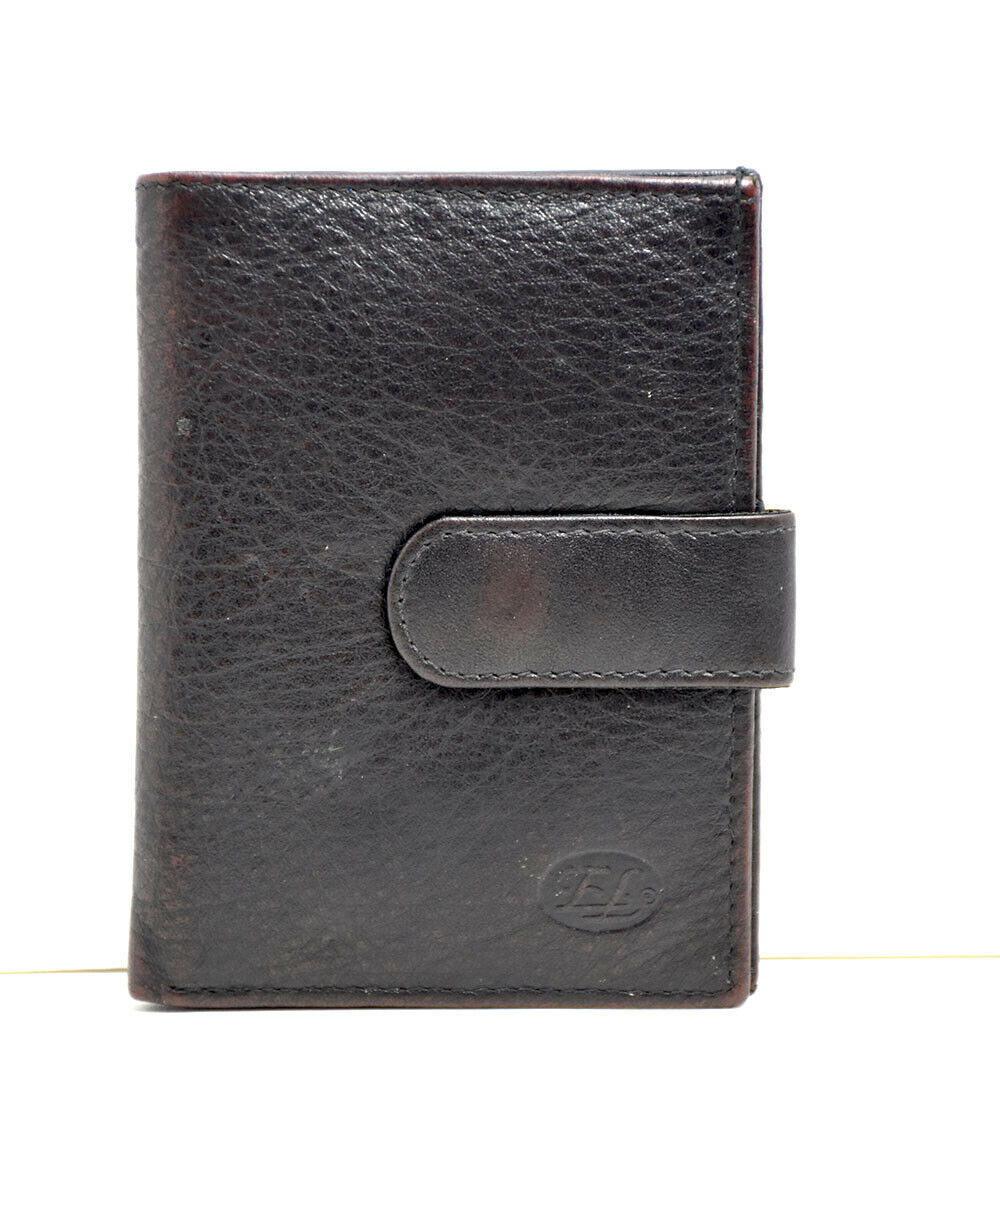 Primary image for Florentino Italian Leather Slim Bifold Card Wallet Holder Snap Closure Brown